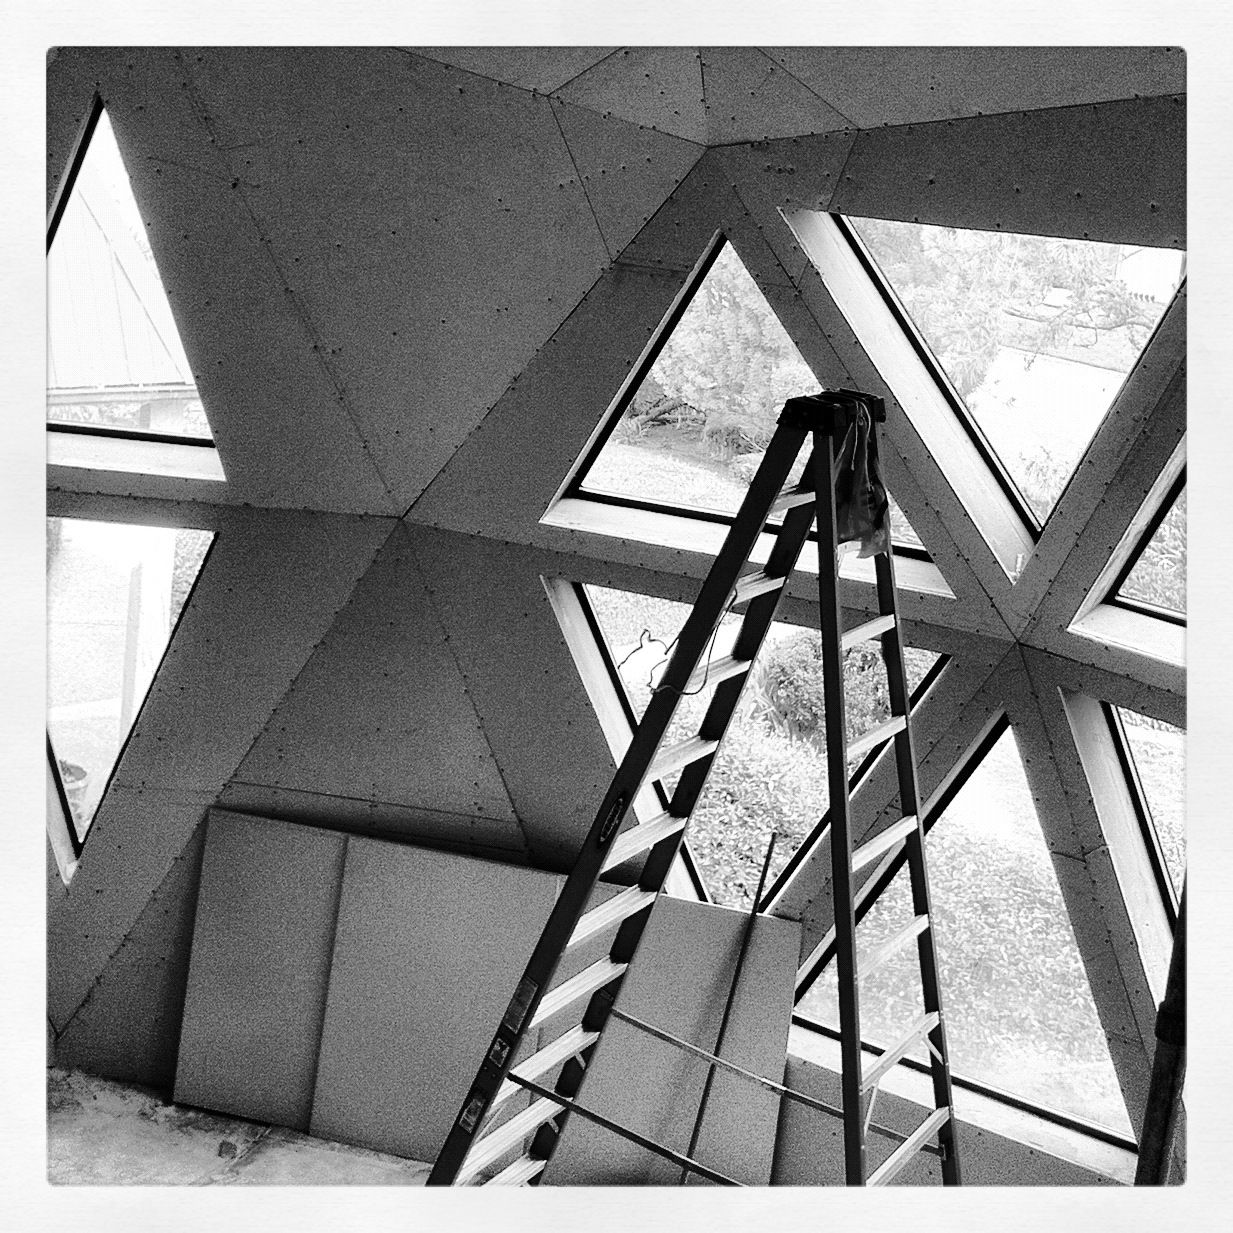 Dome Home Interior Design: Geodesic Dome House Remodel In #Madera. Extremely Time